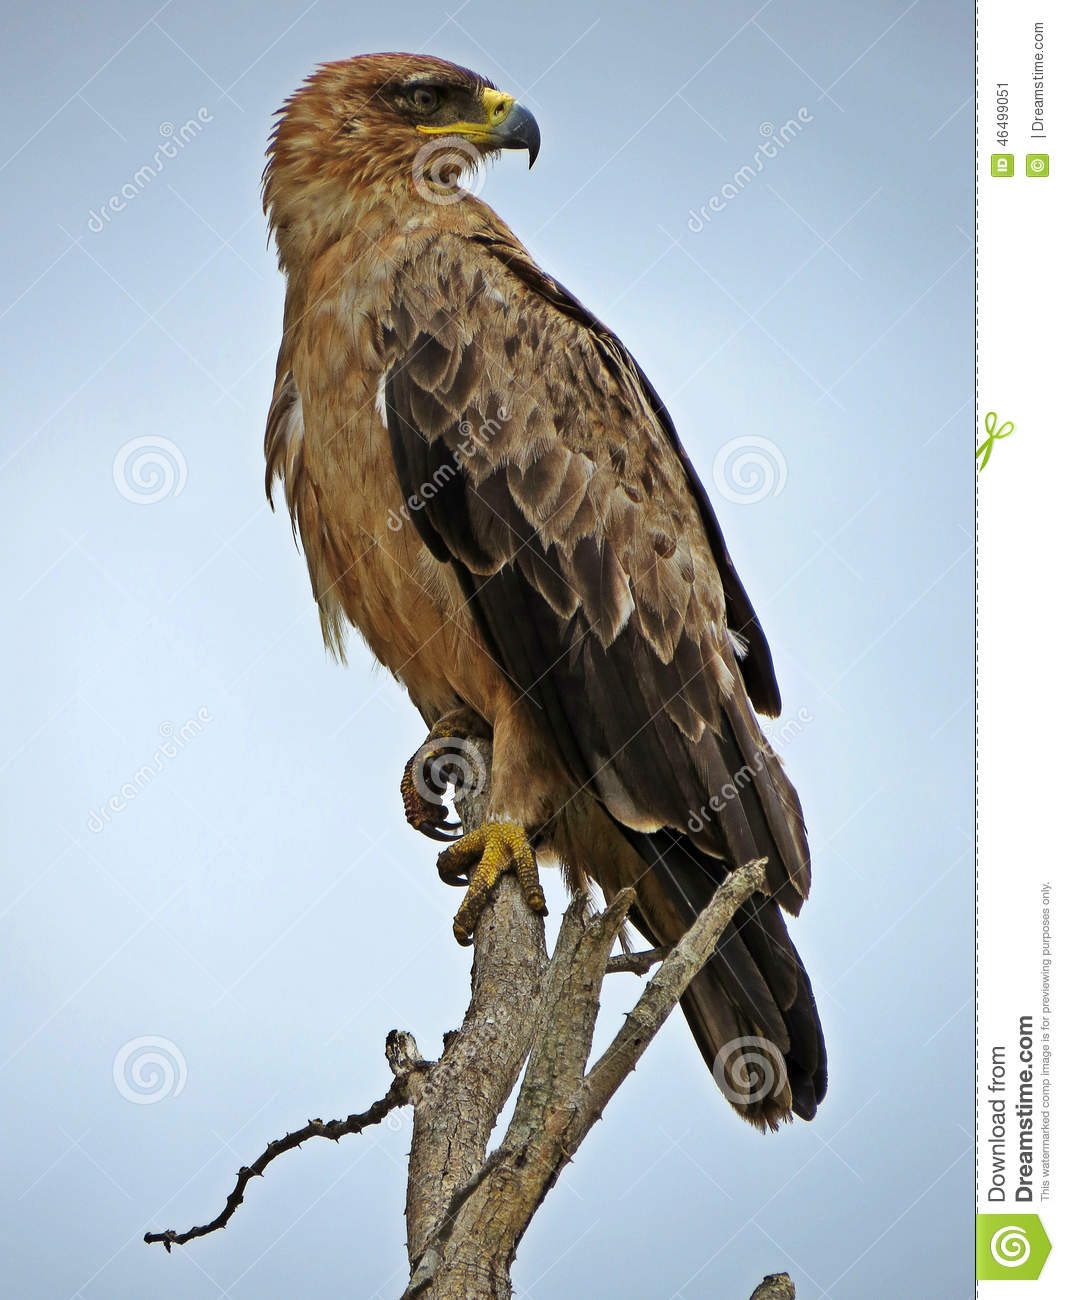 Tawny Eagle clipart #19, Download drawings